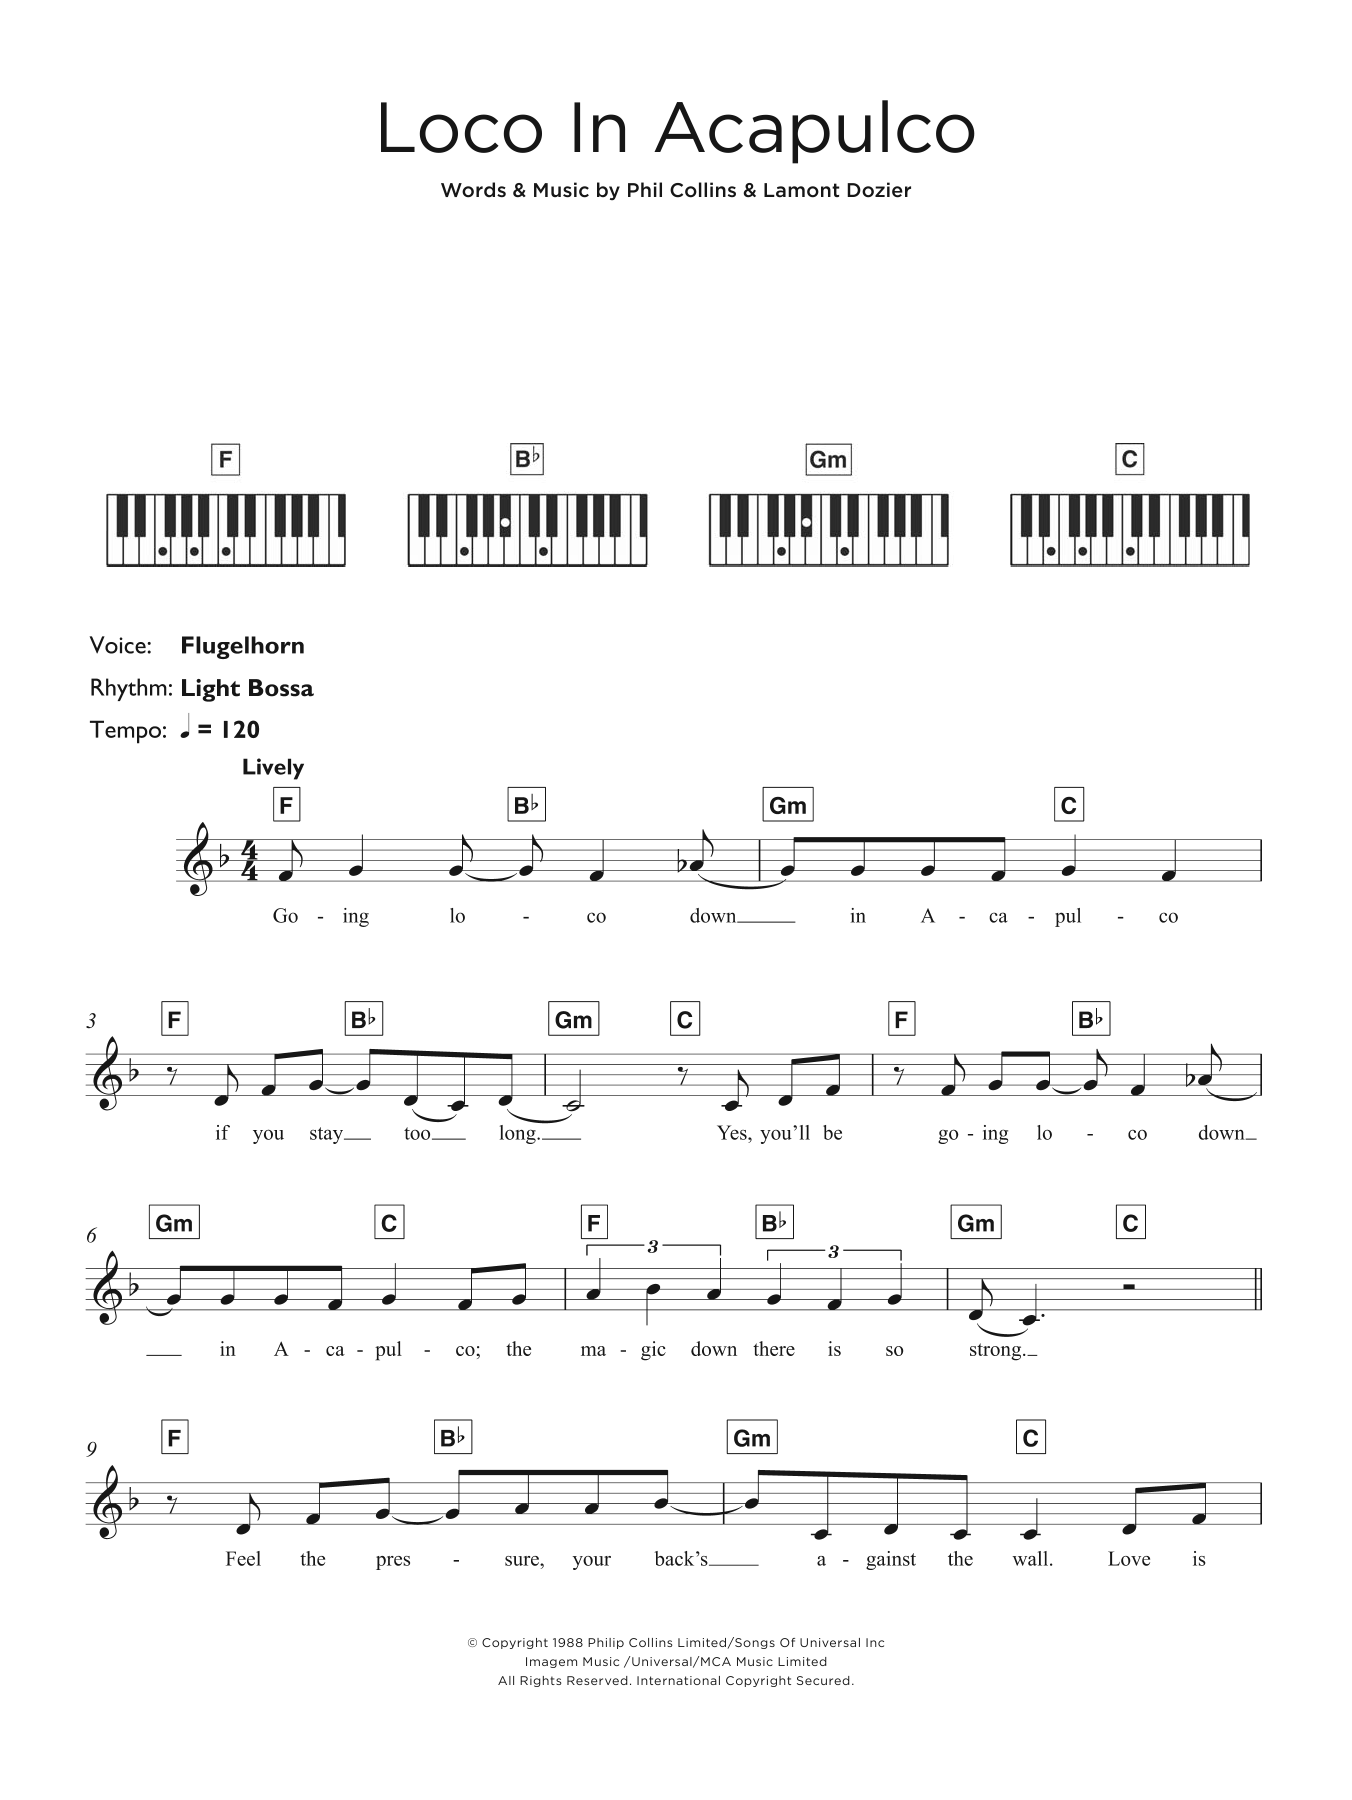 Loco In Acapulco Sheet Music